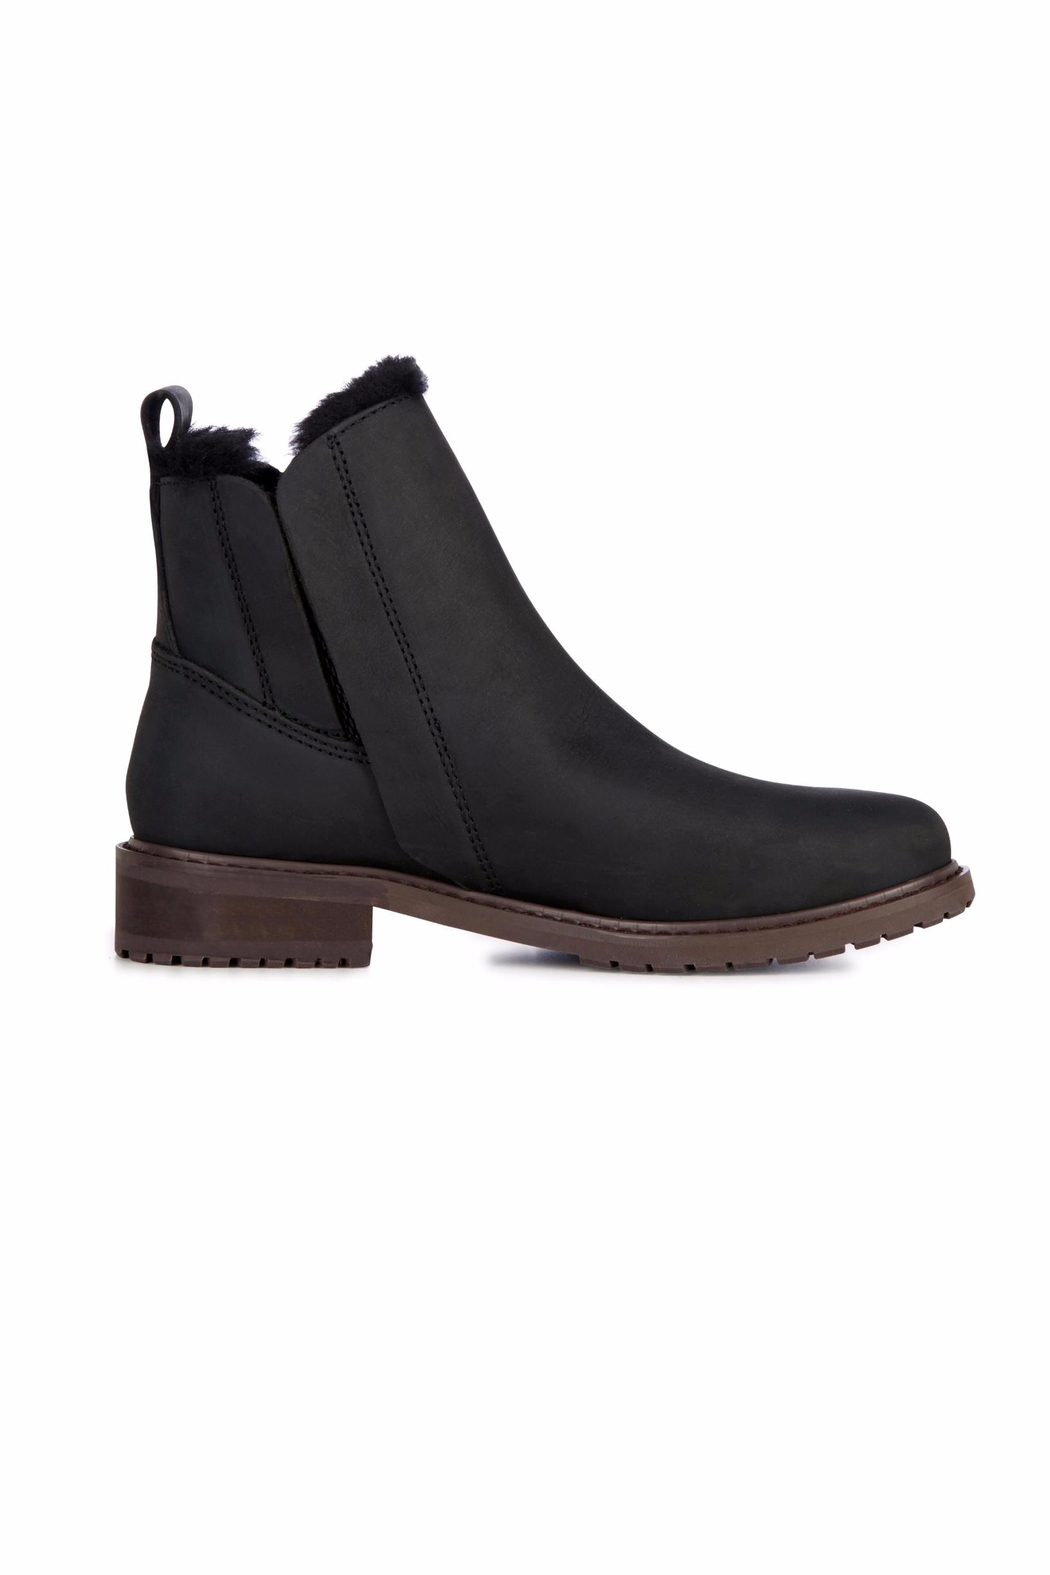 Emu Australia Pioneer Chelsea Boots - Front Full Image